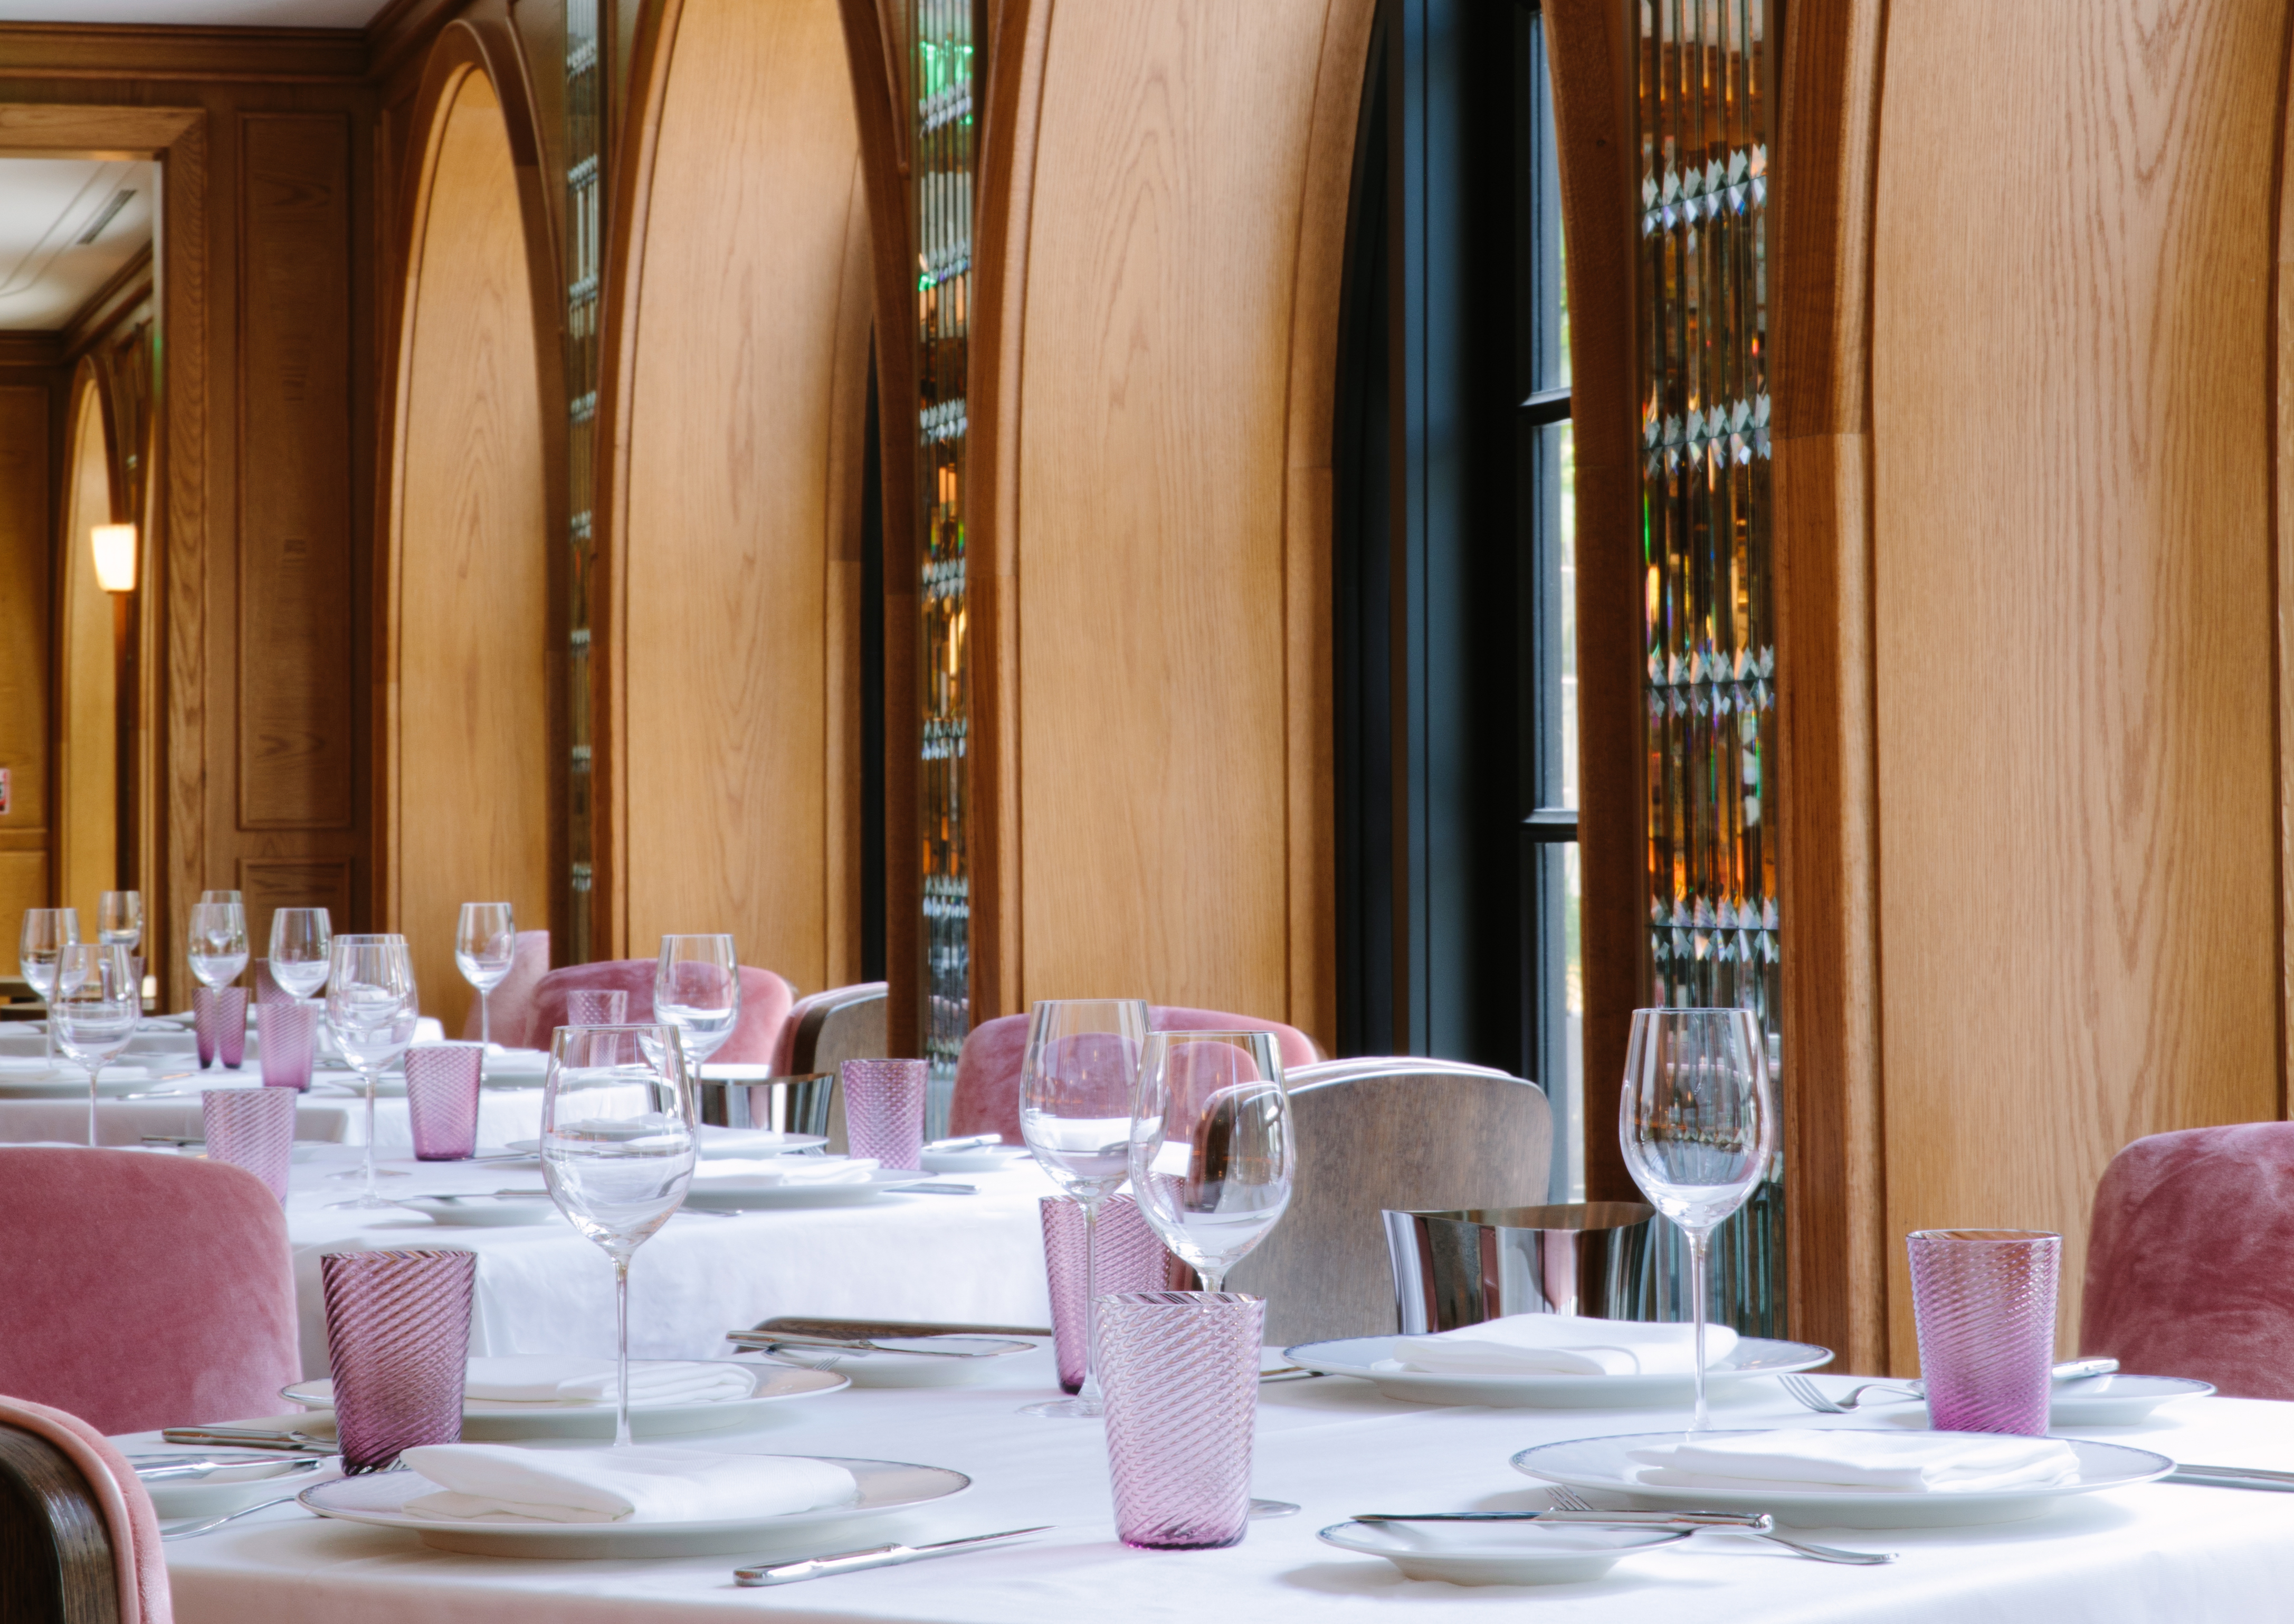 The dining room at the Surf Club by Thomas Keller